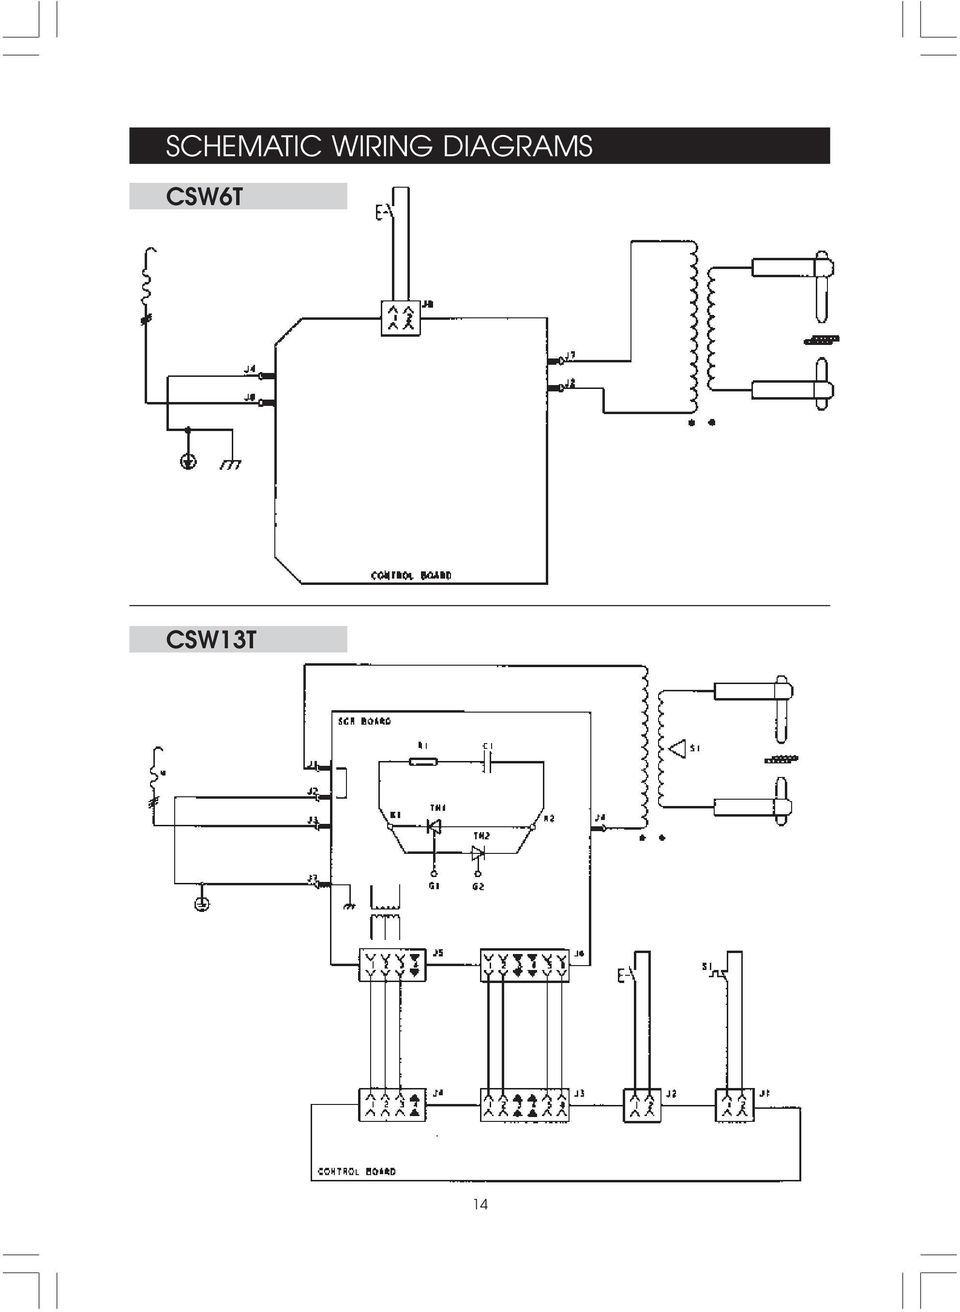 Spot Welder Operating Maintenance Instructions Models Csw6t Resistance Welding Block Diagram Diagrams